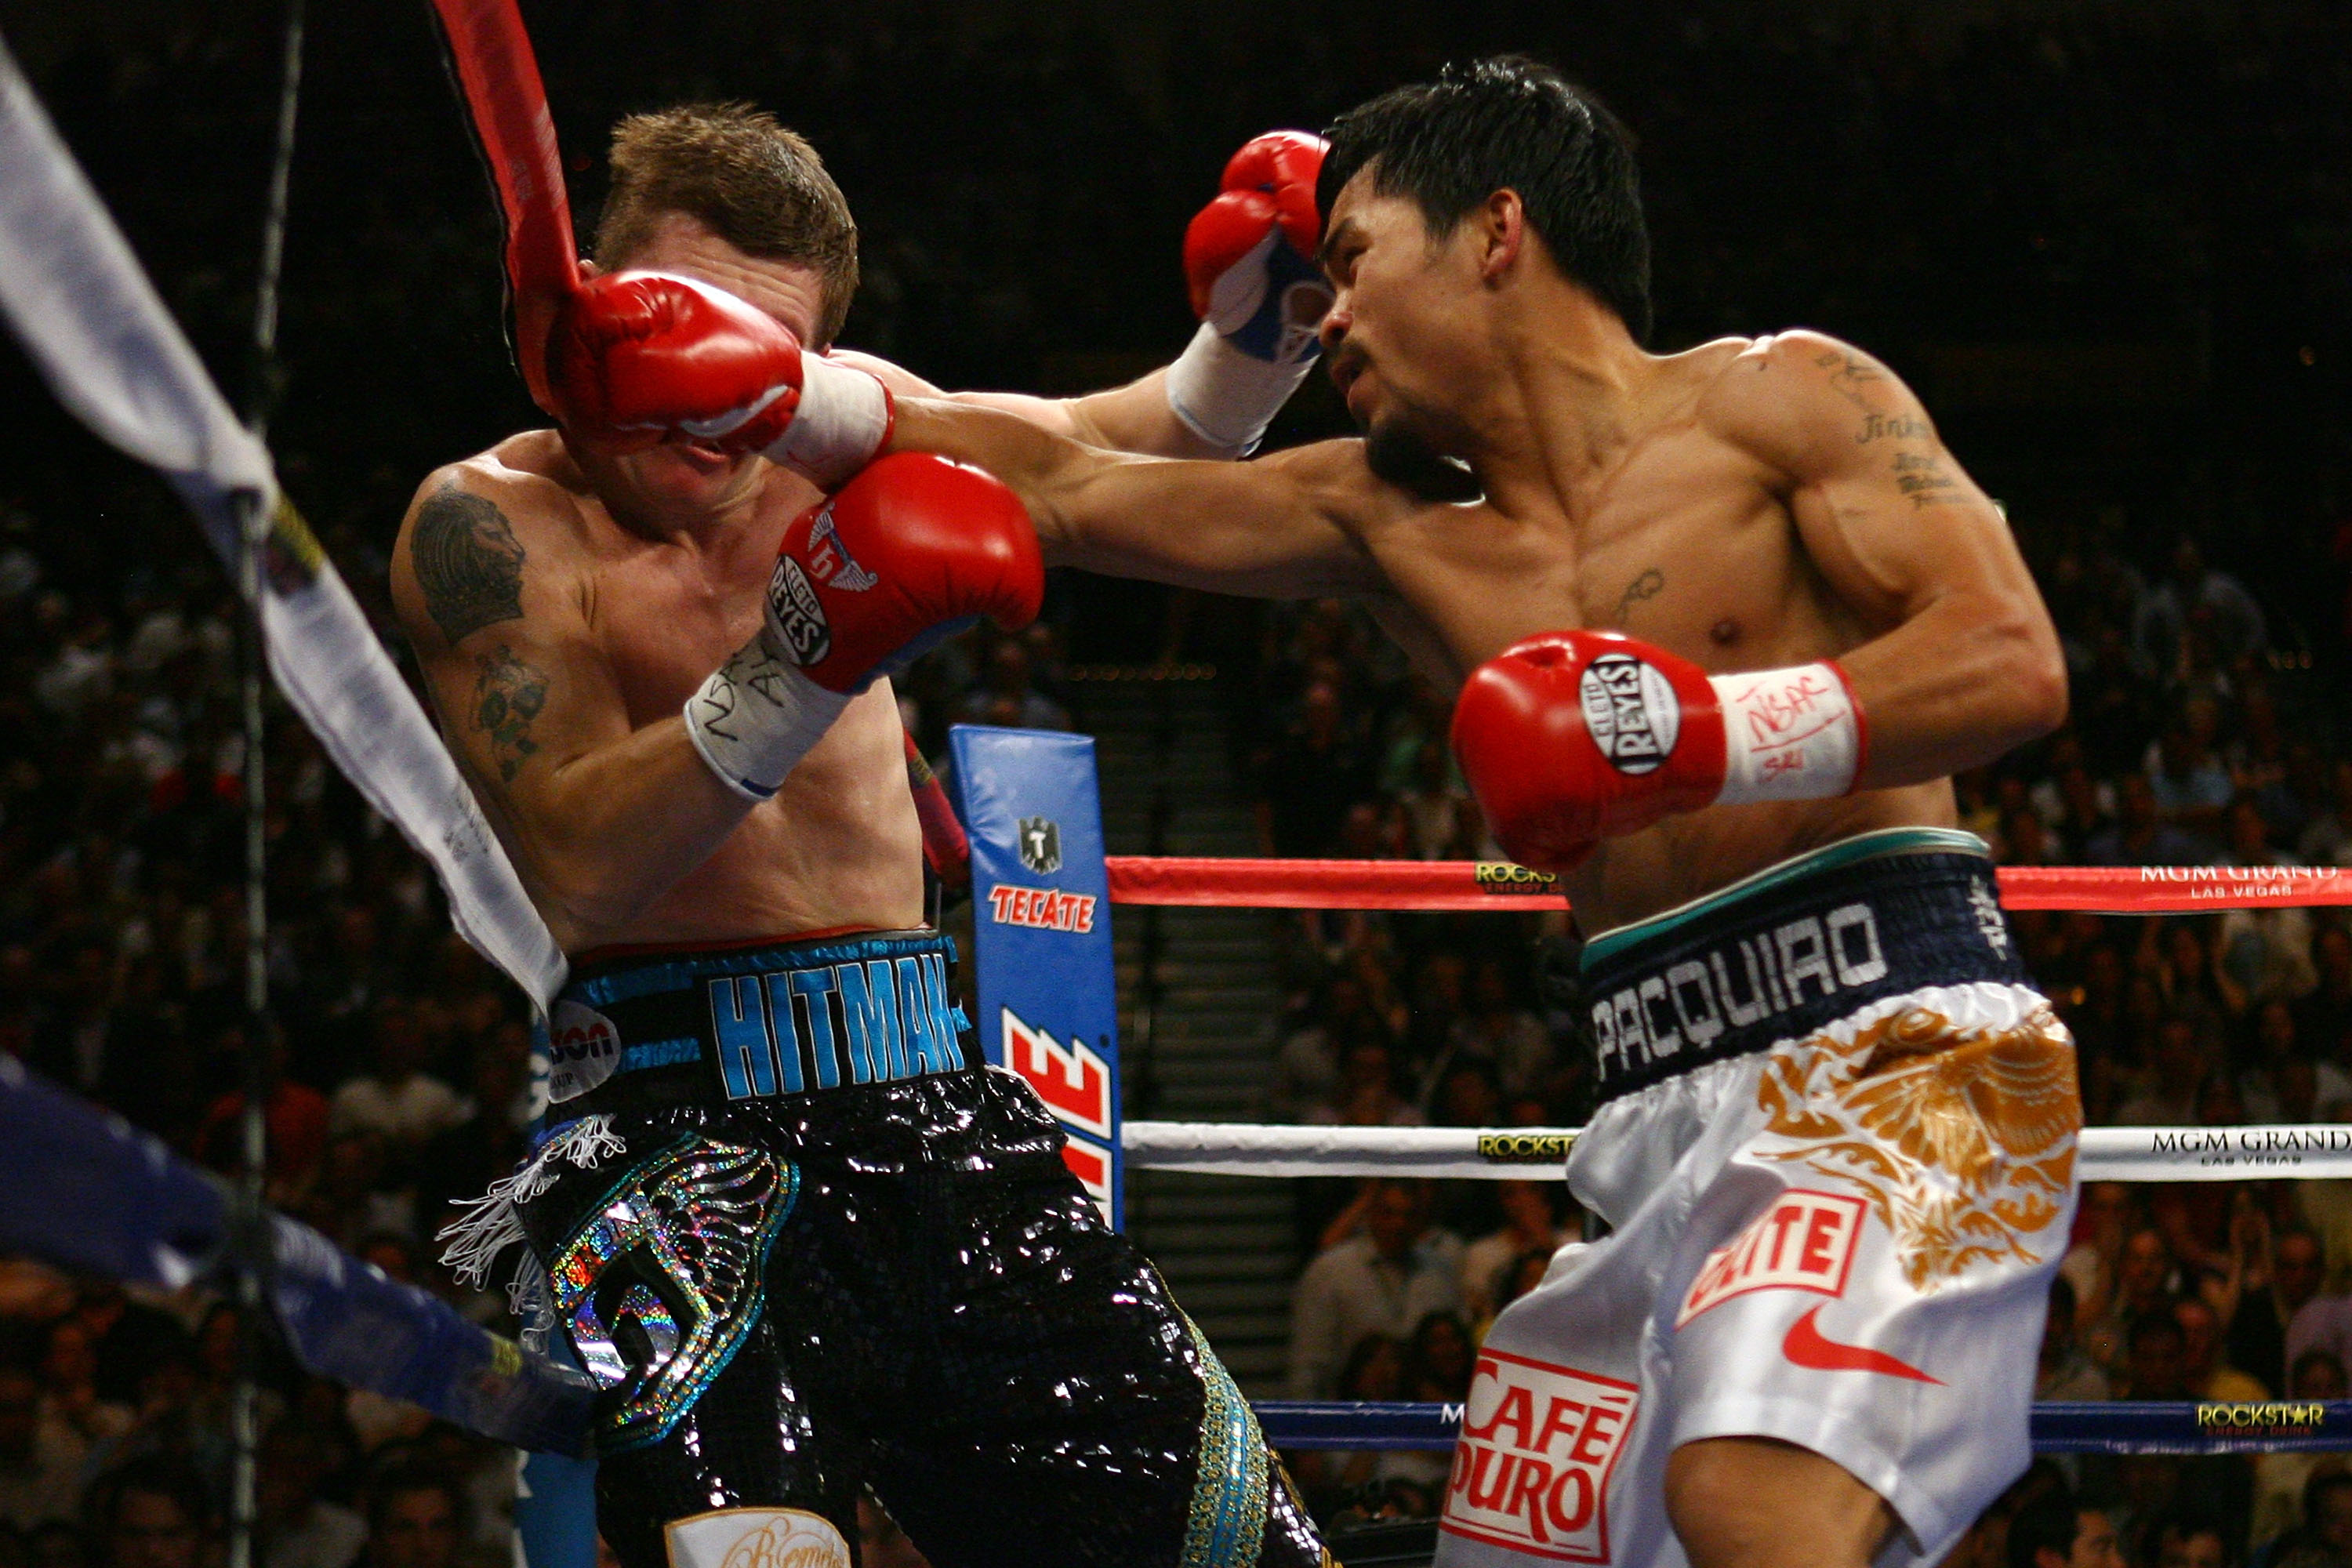 LAS VEGAS - MAY 02:  (R-L) Manny Pacquiao of the Philippines connects with a right to the face of Ricky Hatton of England in the first round of their junior welterweight title fight at the MGM Grand Garden Arena May 2, 2009 in Las Vegas, Nevada. Pacquiao